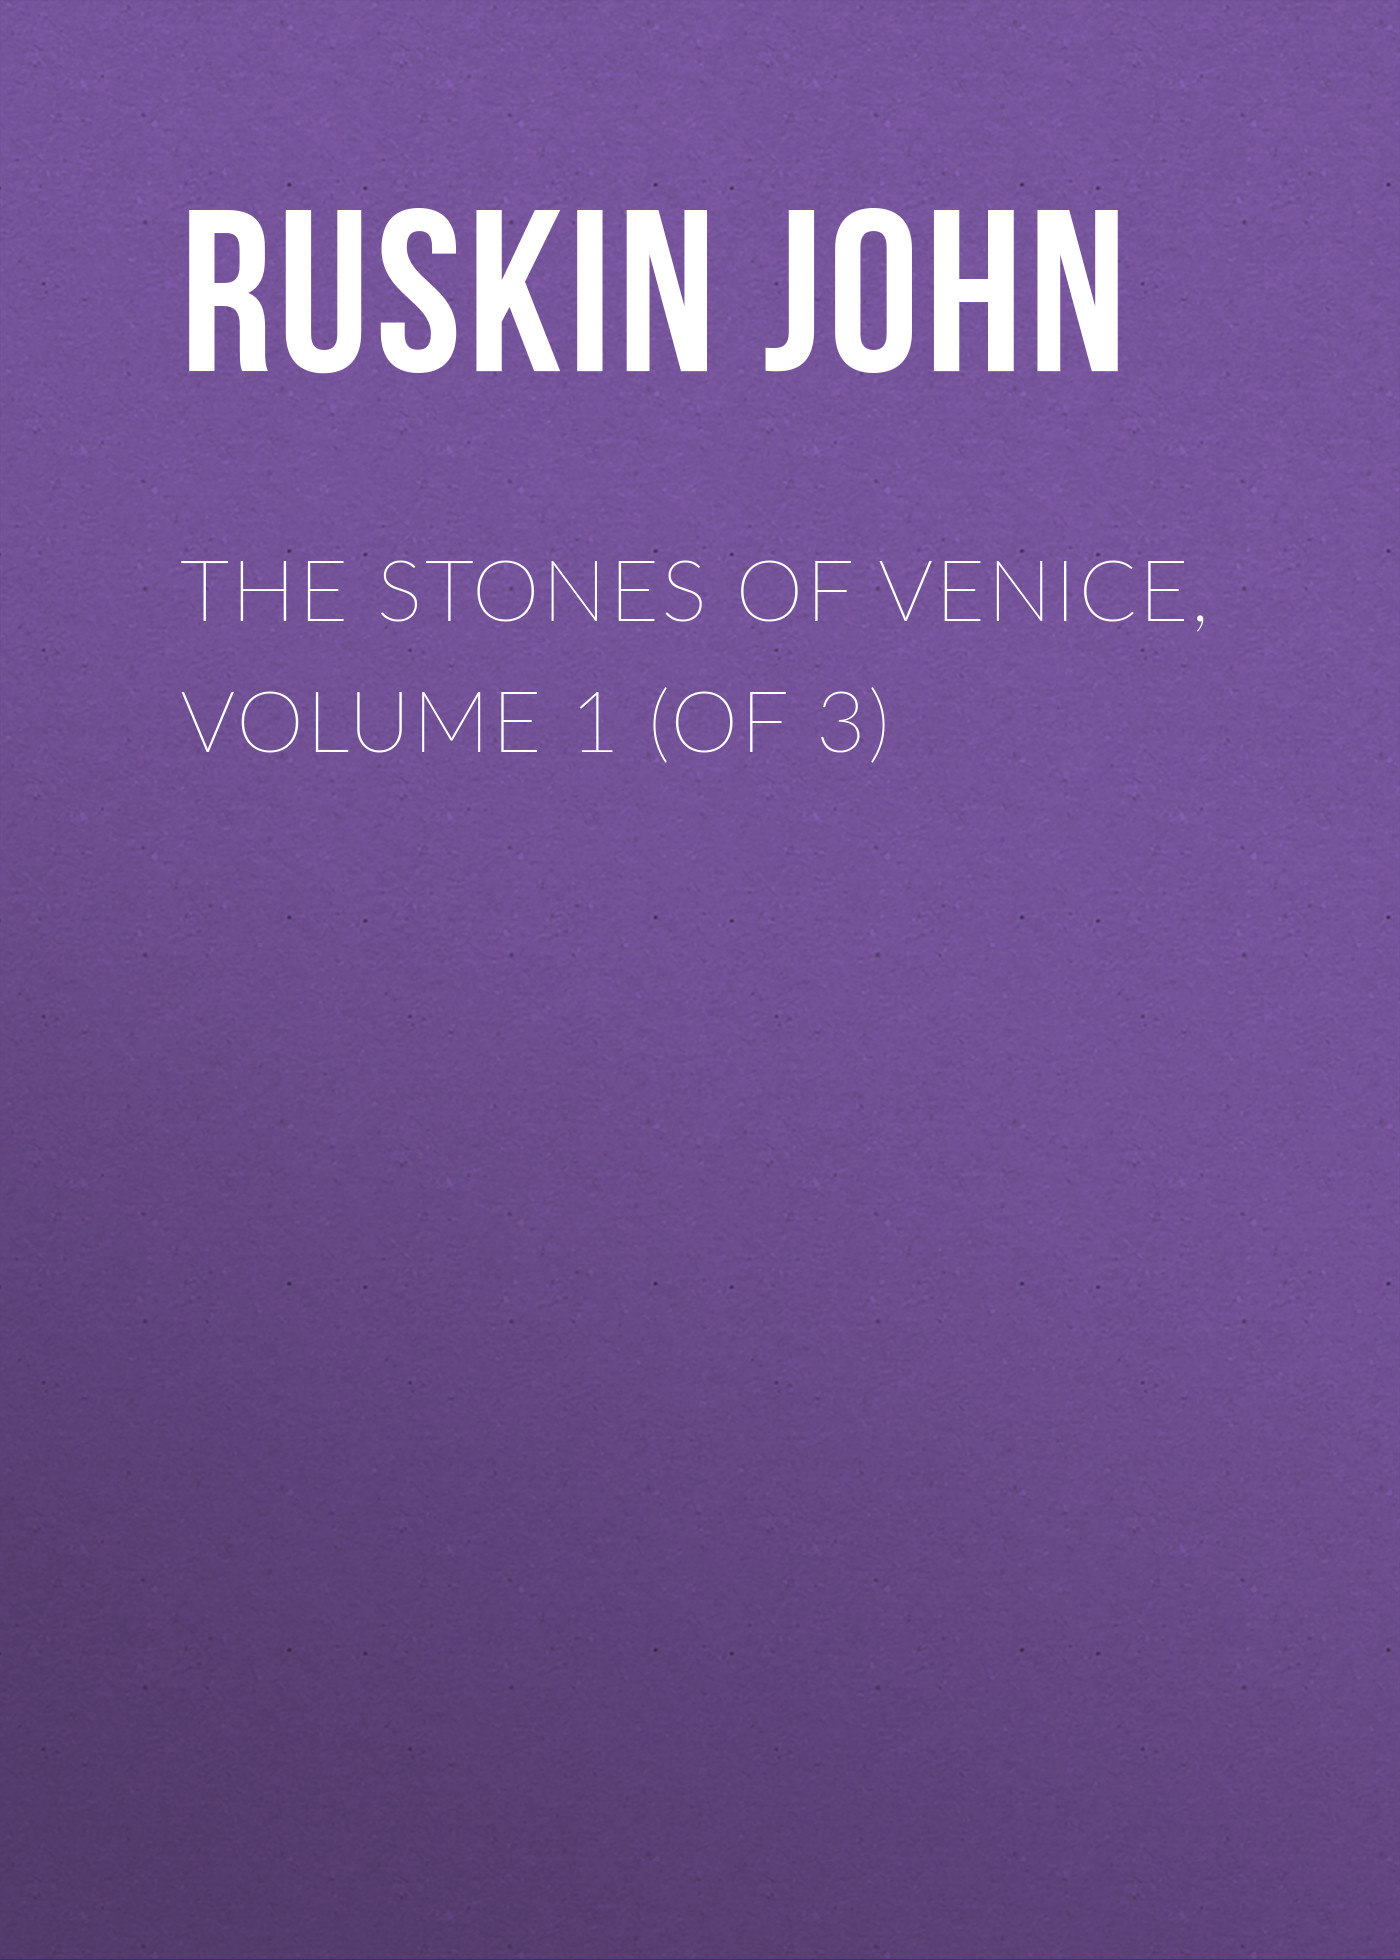 Ruskin John The Stones of Venice, Volume 1 (of 3)